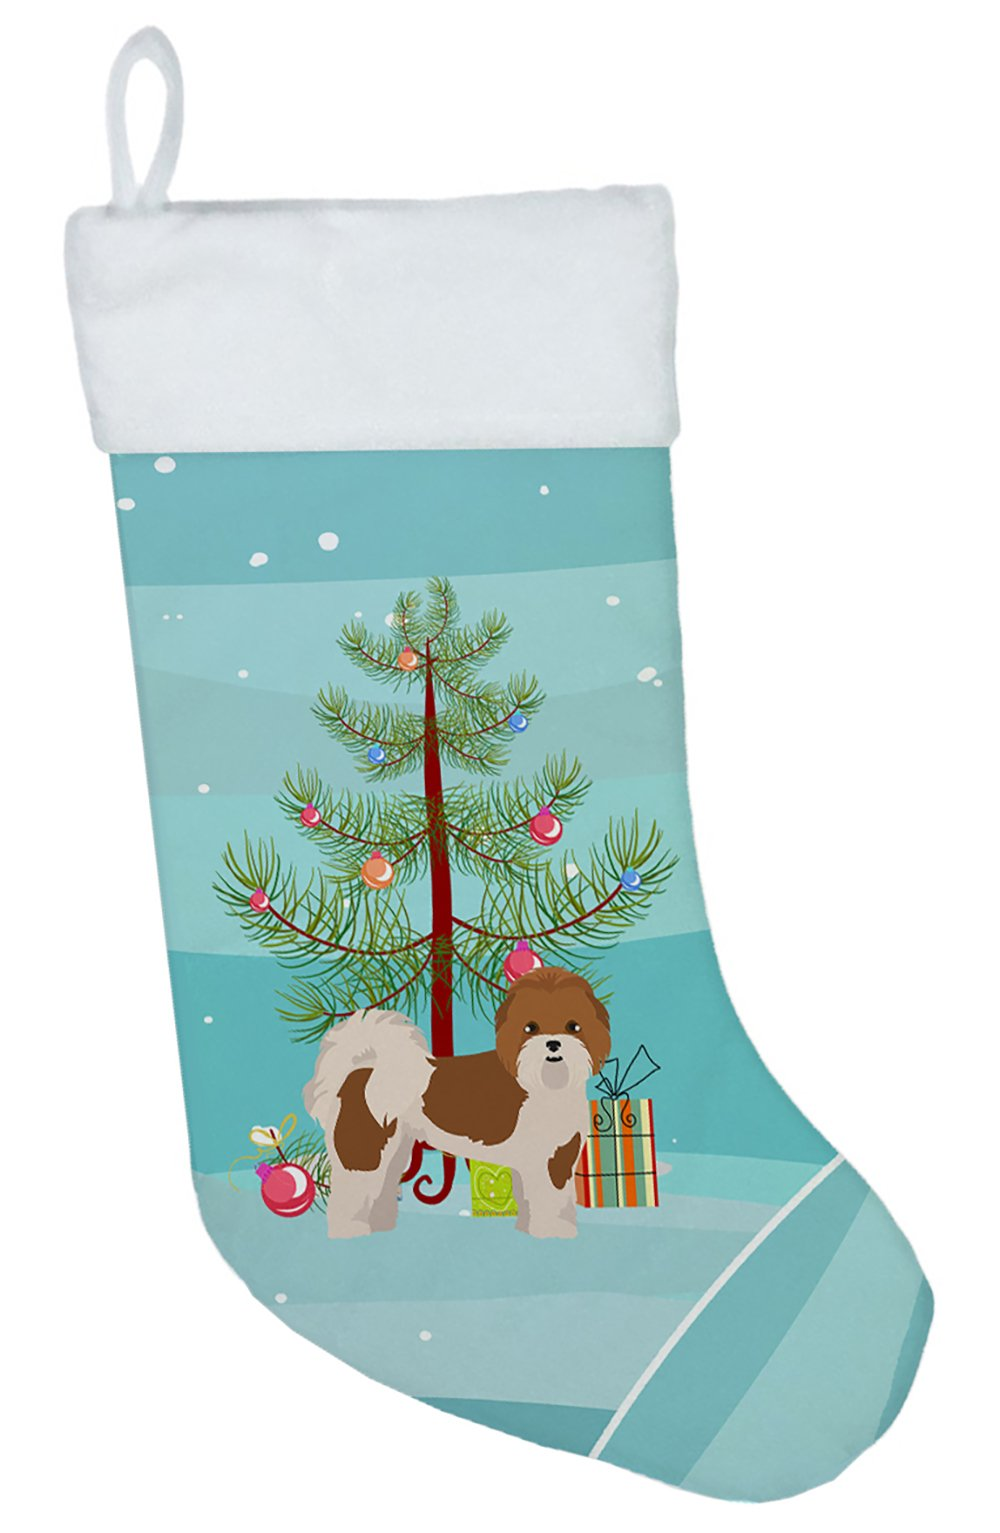 Mal-Shi Christmas Tree Christmas Stocking CK3853CS by Caroline's Treasures